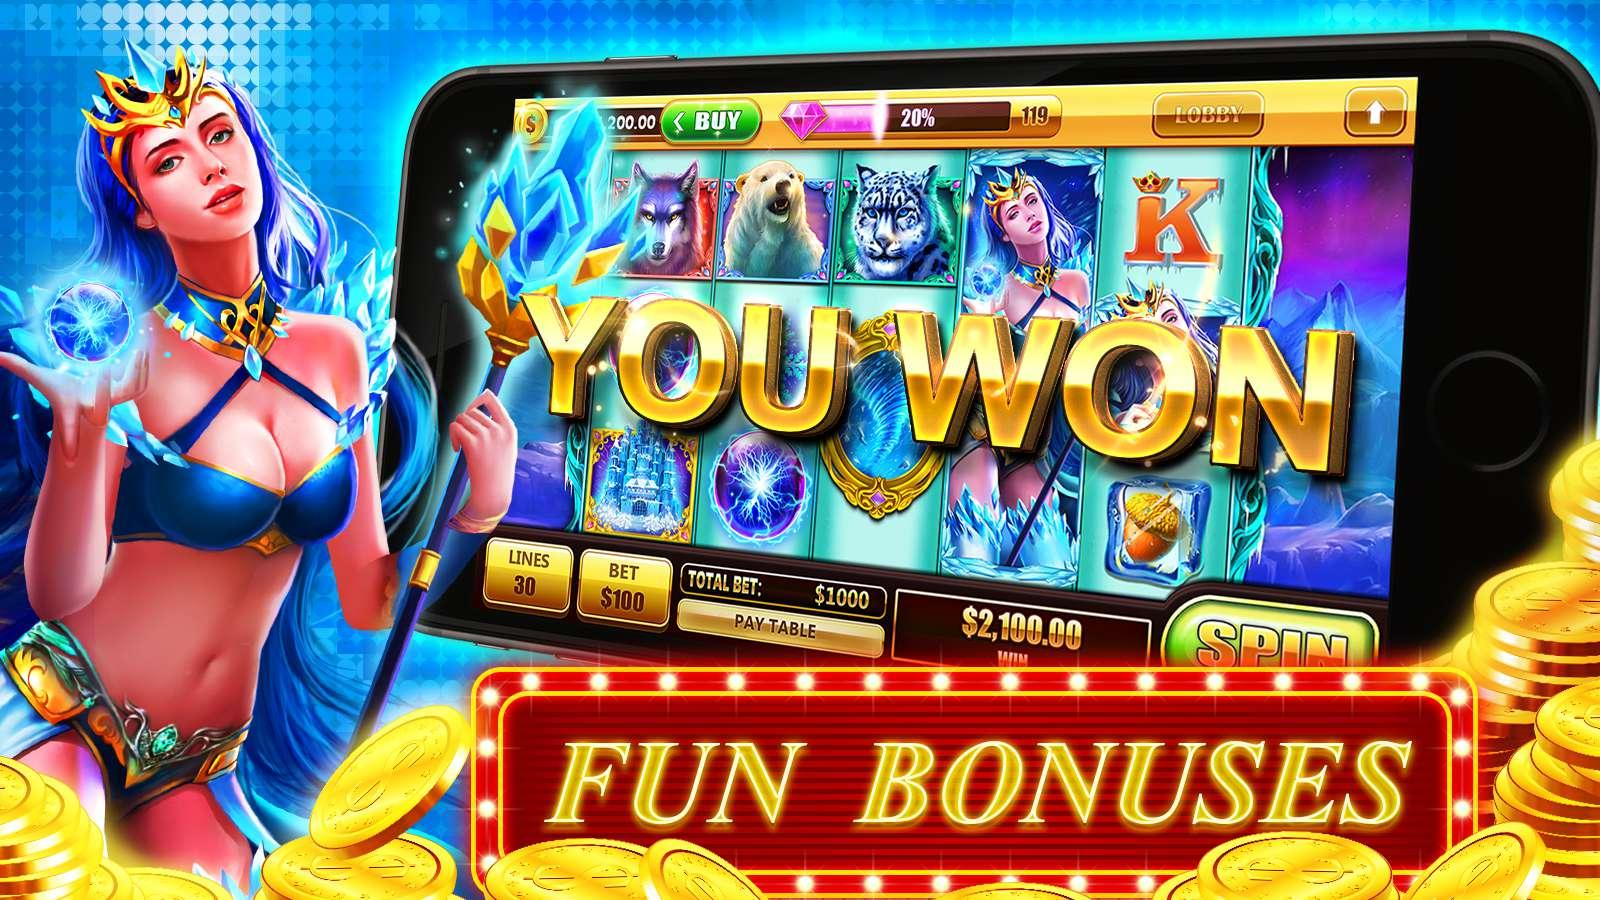 Games Bond Slot Machine - Play for Free & Win for Real